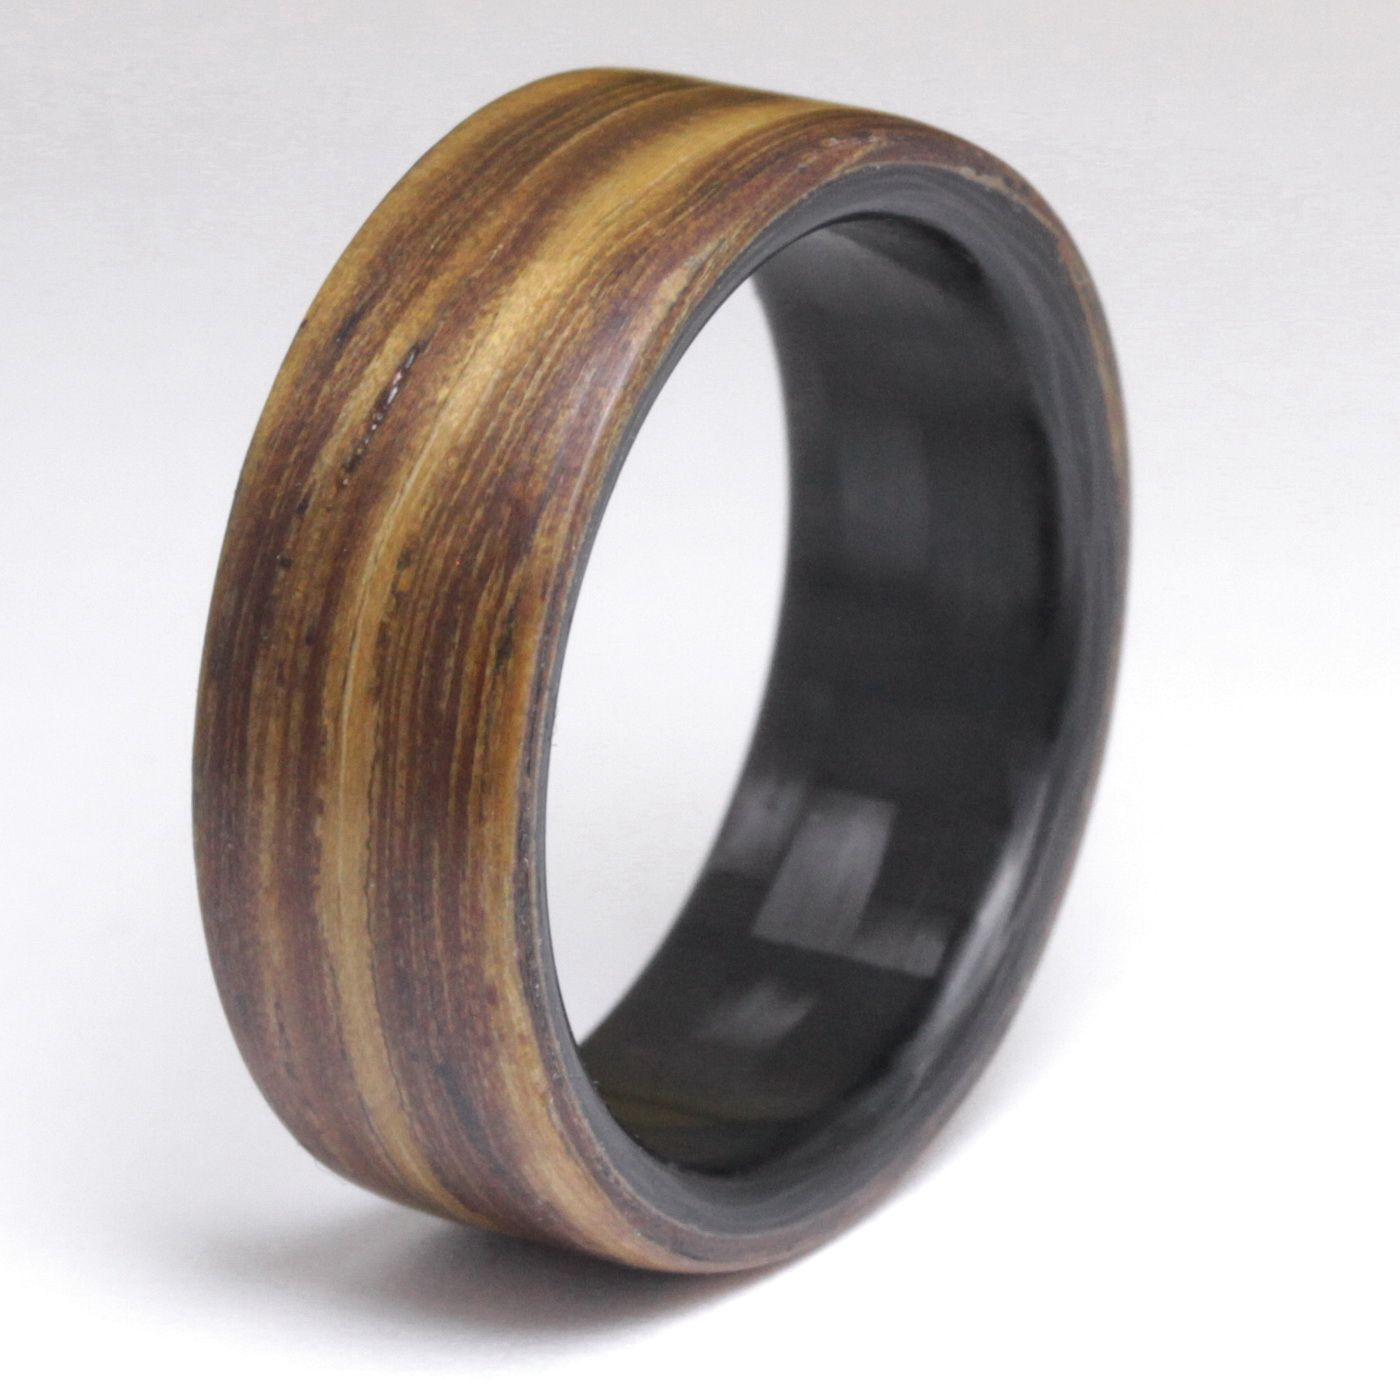 Carbon fiber rings handmade by element ring co